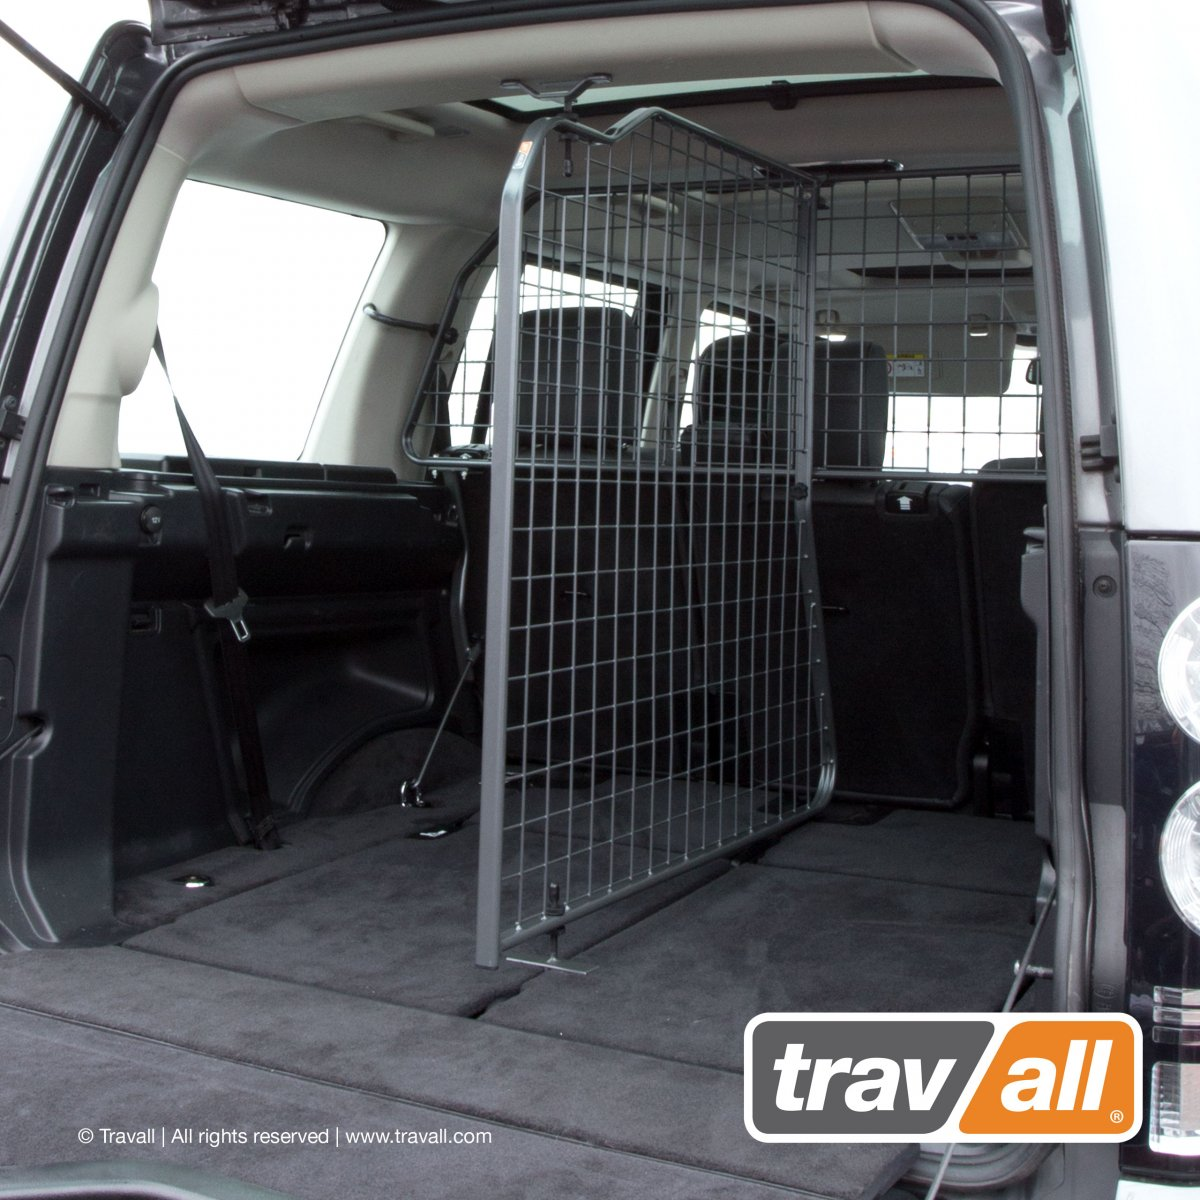 Travall® DIVIDER for Land Rover Discovery 3/4 / LR 3/4 (2004-2016)